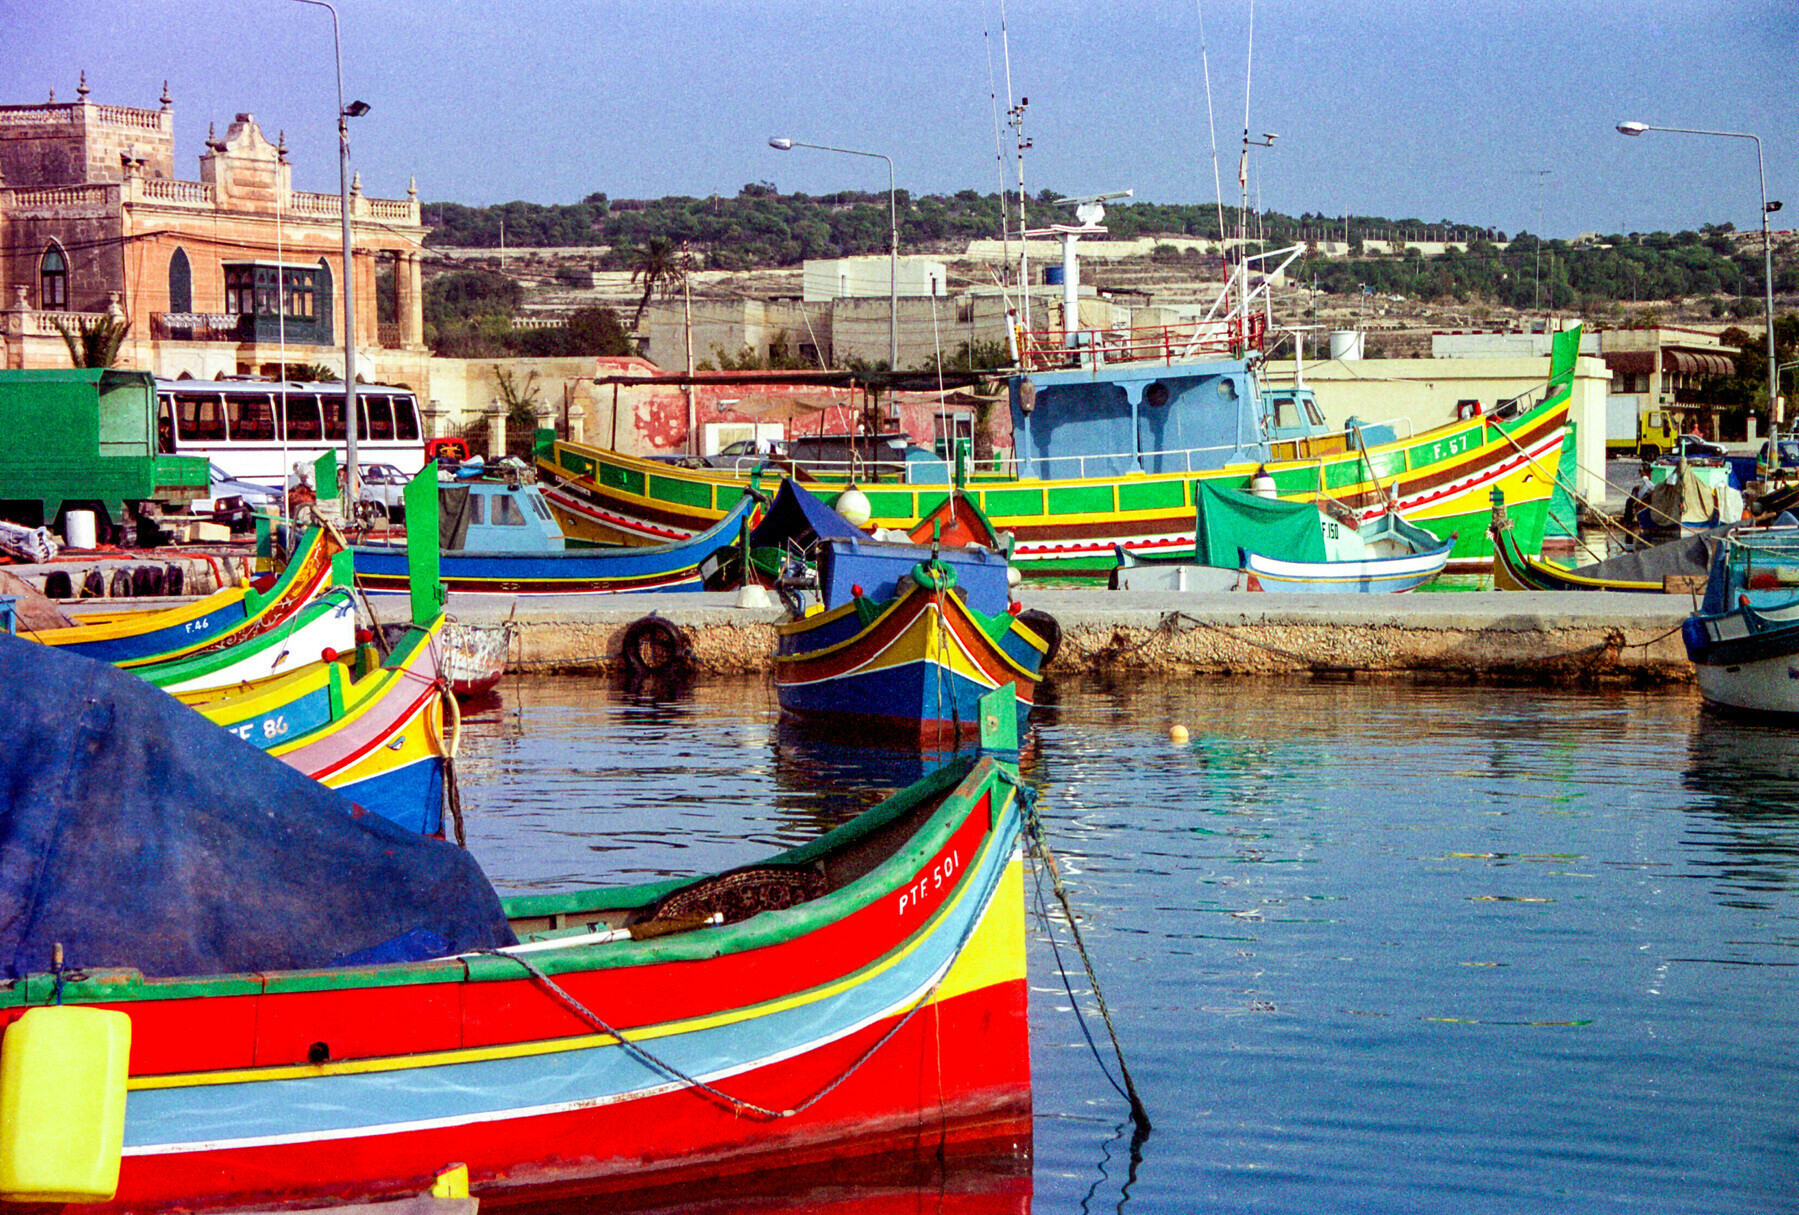 Colourful boats in a harbour in Malta.